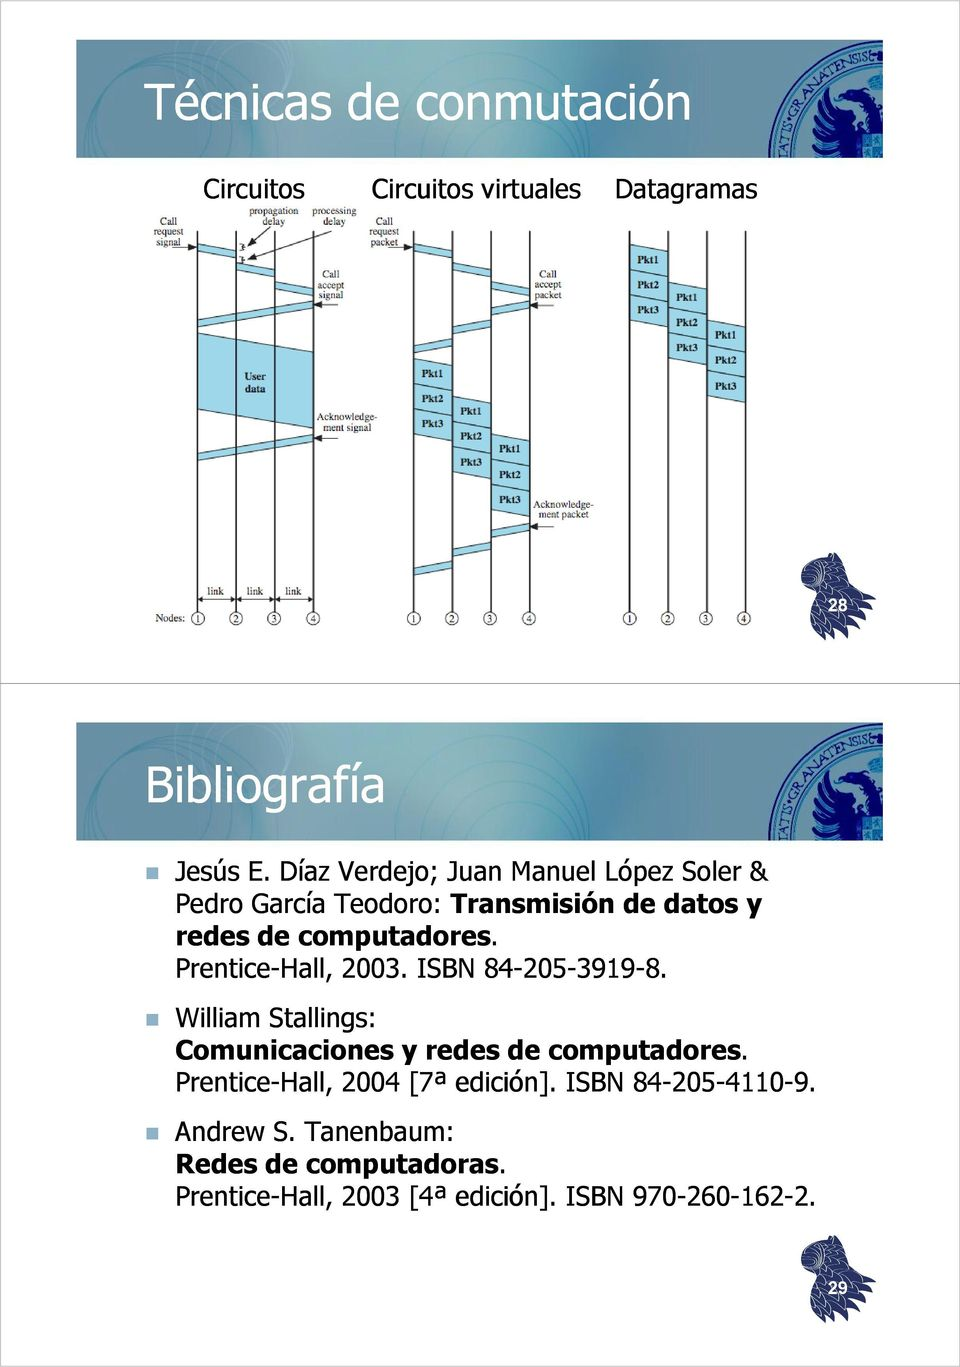 Prentice-Hall, 2003. ISBN 84-205-3919-8. William Stallings: Comunicaciones y redes de computadores.